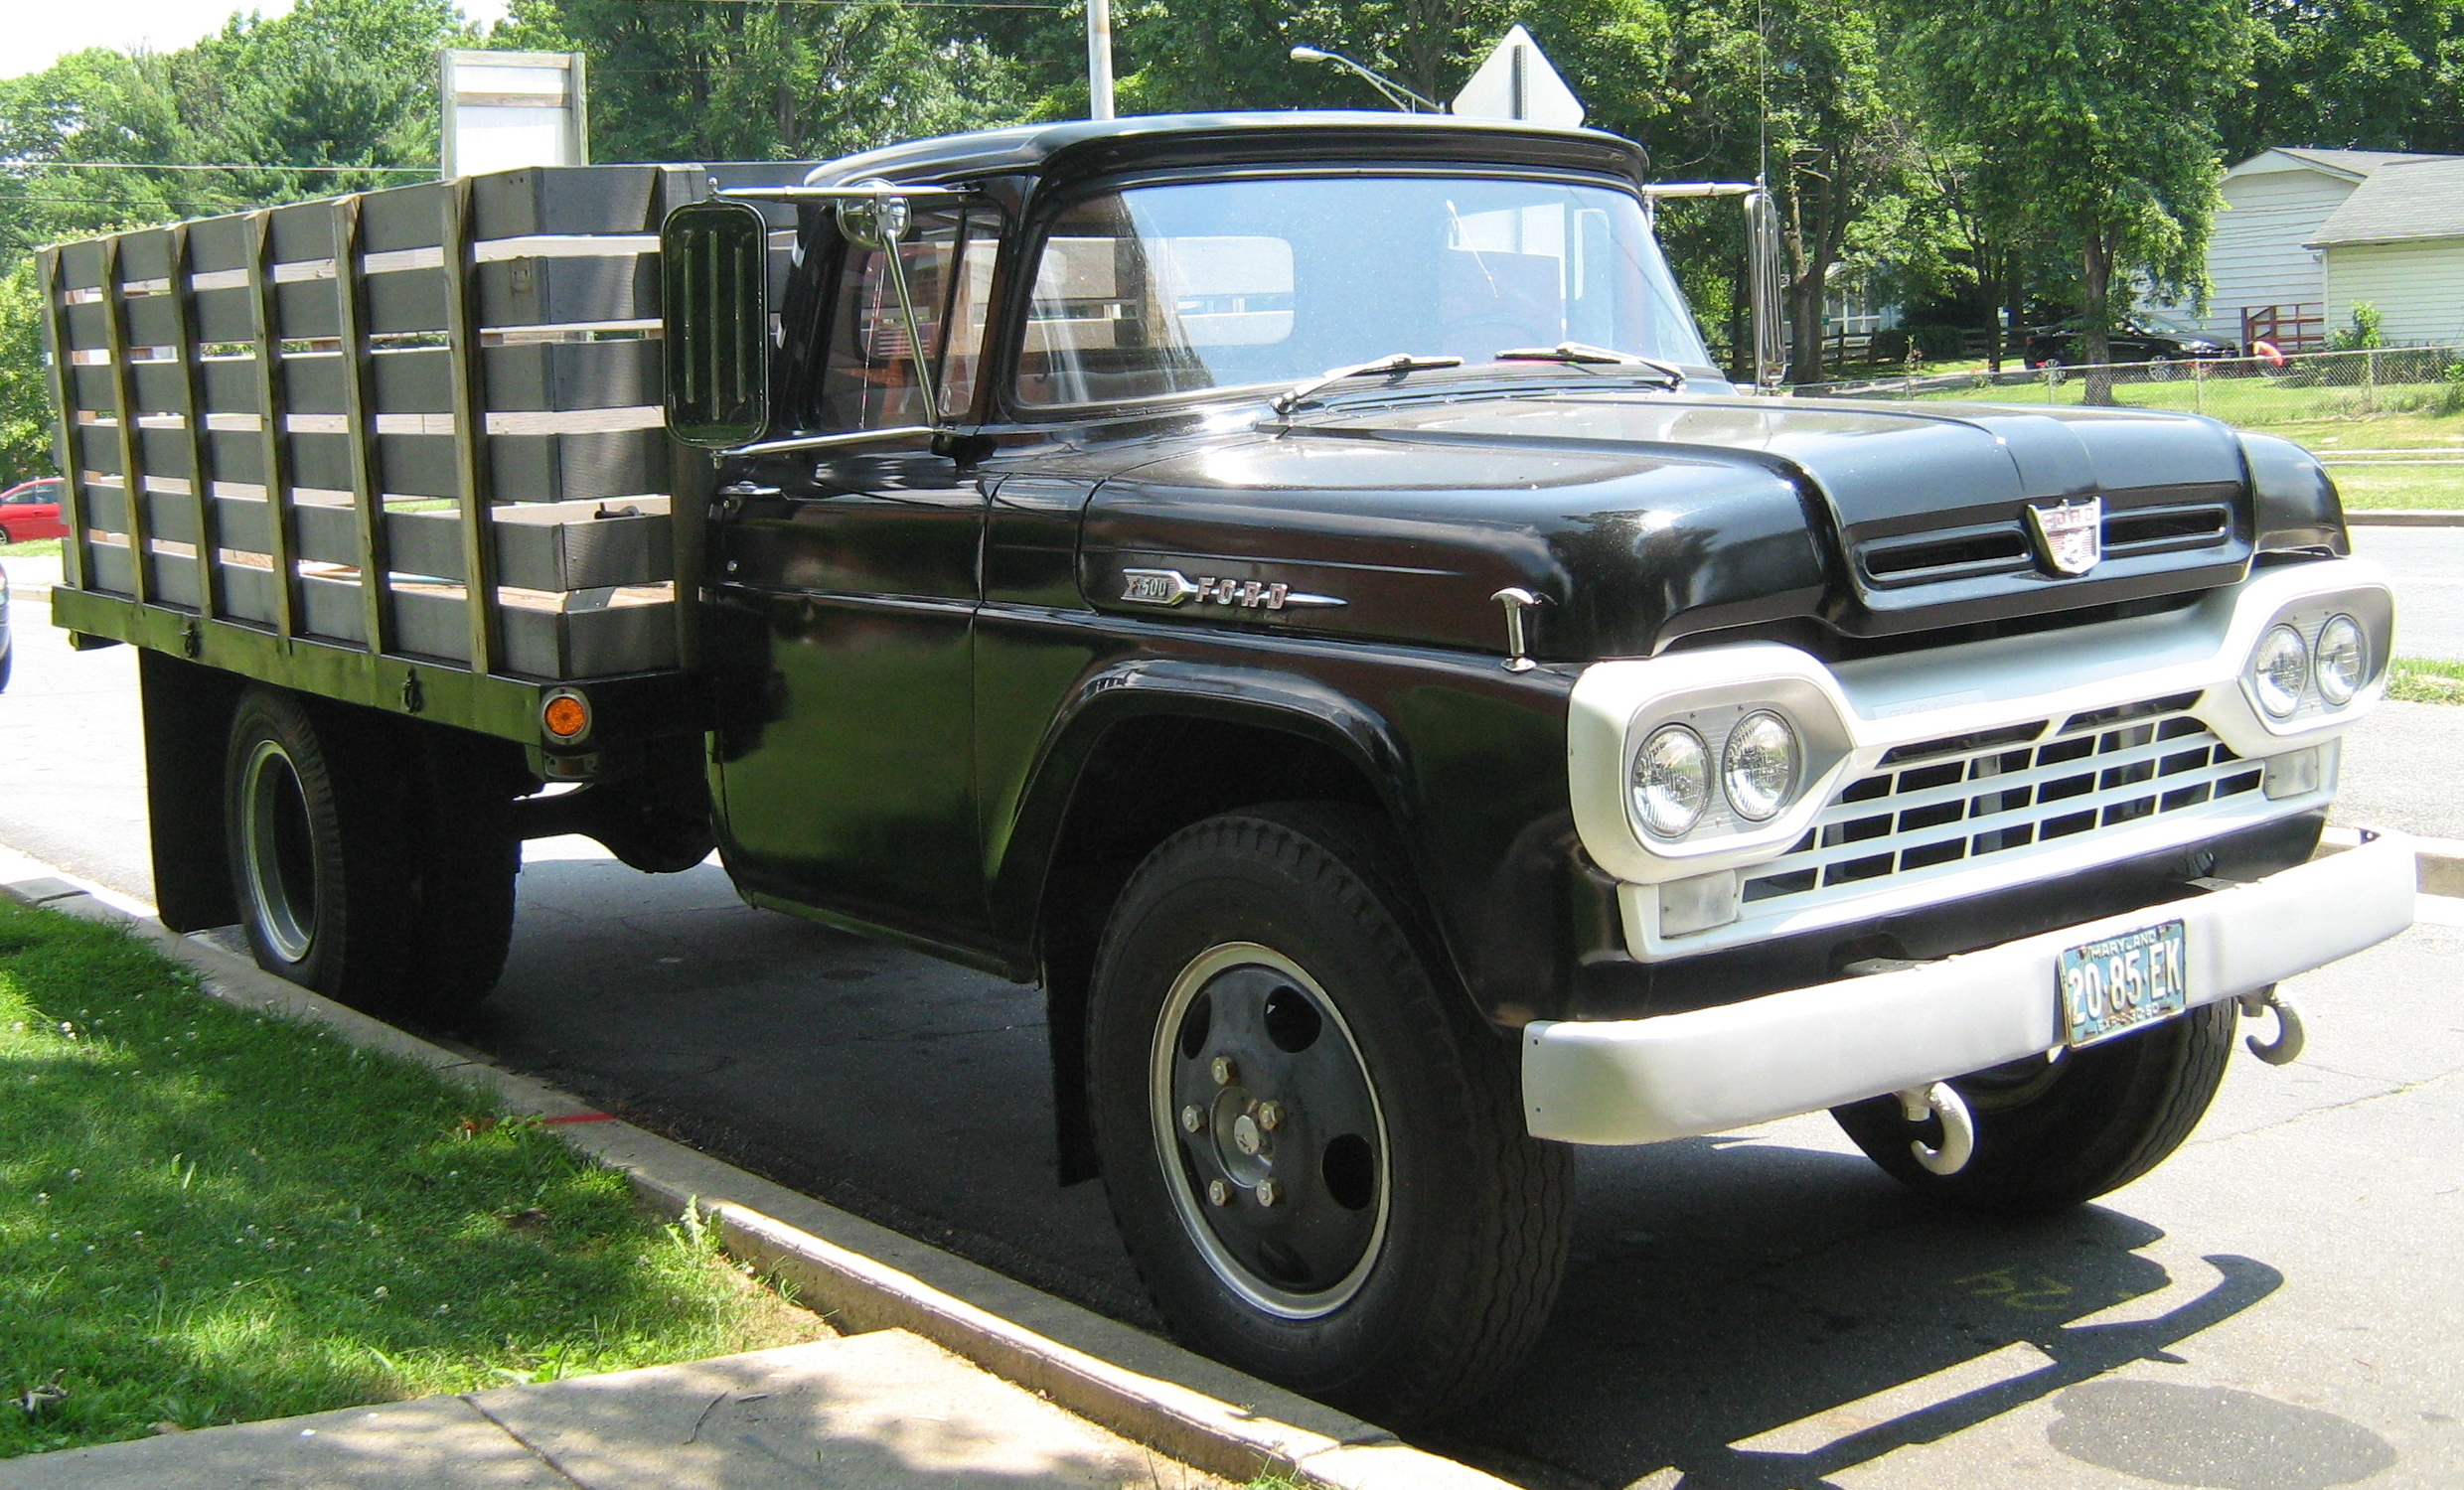 File:1960 Ford F-500 stake truck black fr.jpg - Wikimedia Commons